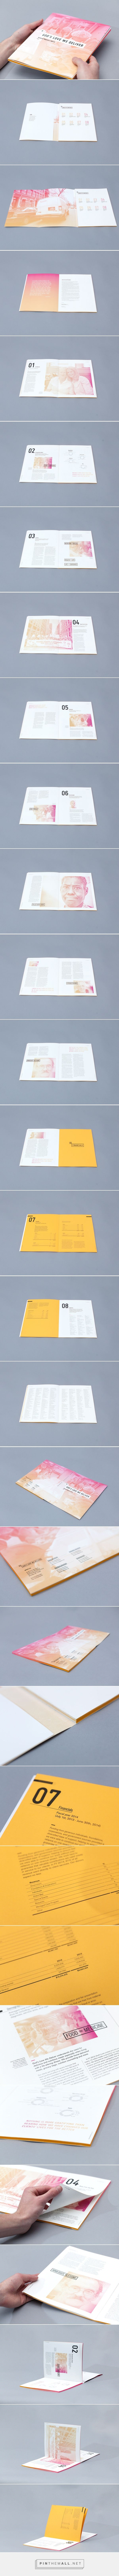 God's Love We Deliver   Annual Report on Behance - created via http://pinthemall.net